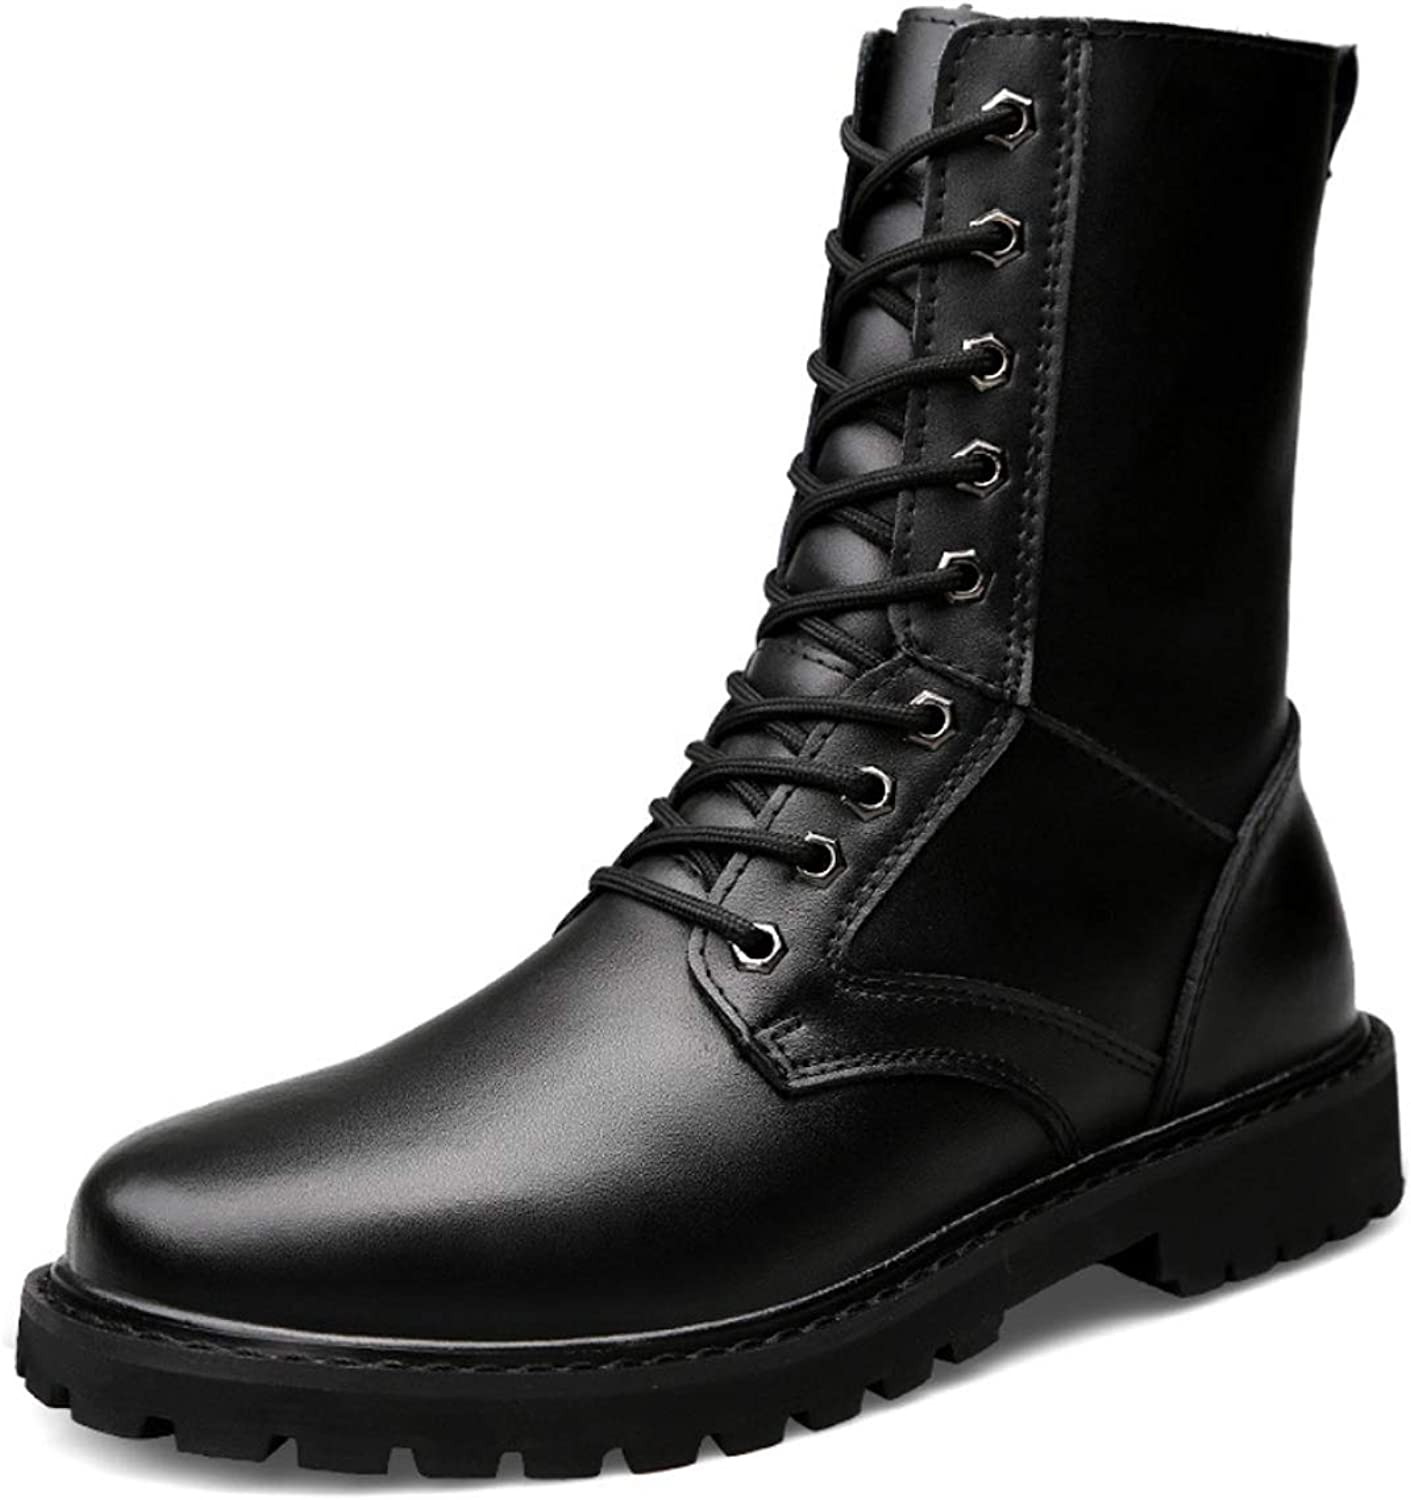 DANDANJIE Men's Boots Martin Boots High-top Motorcycle Boots Casual Military Boots Riding Boots Tooling Boots Non-Slip Waterproof for Fall Winter